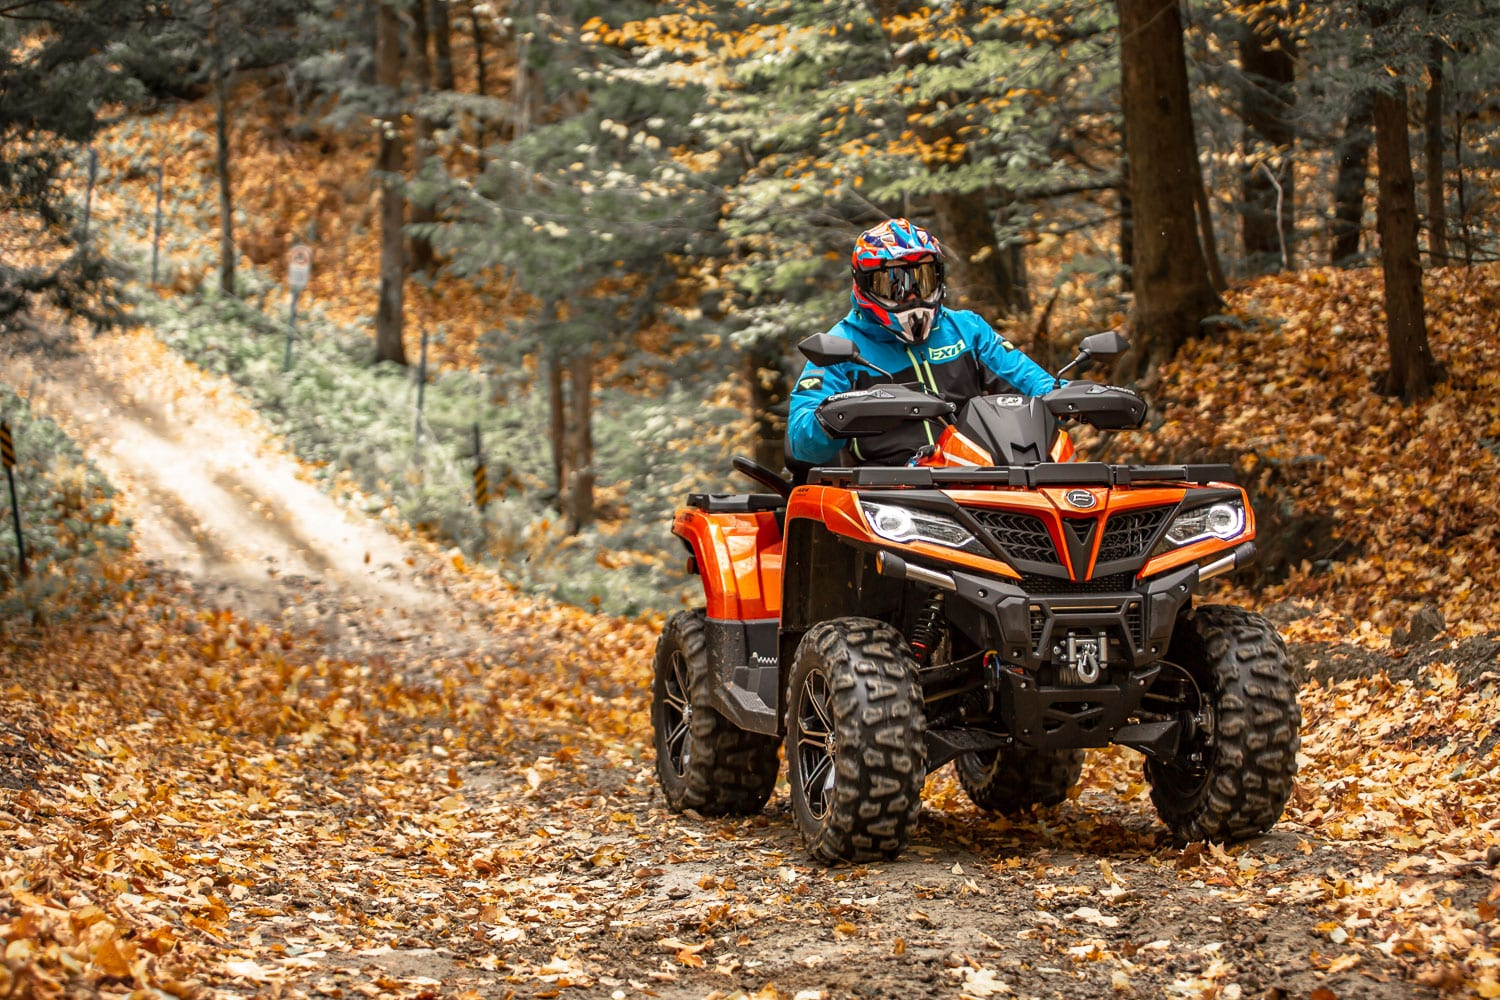 CFMOTO CFORCE 800 XC 2019 REVIEW